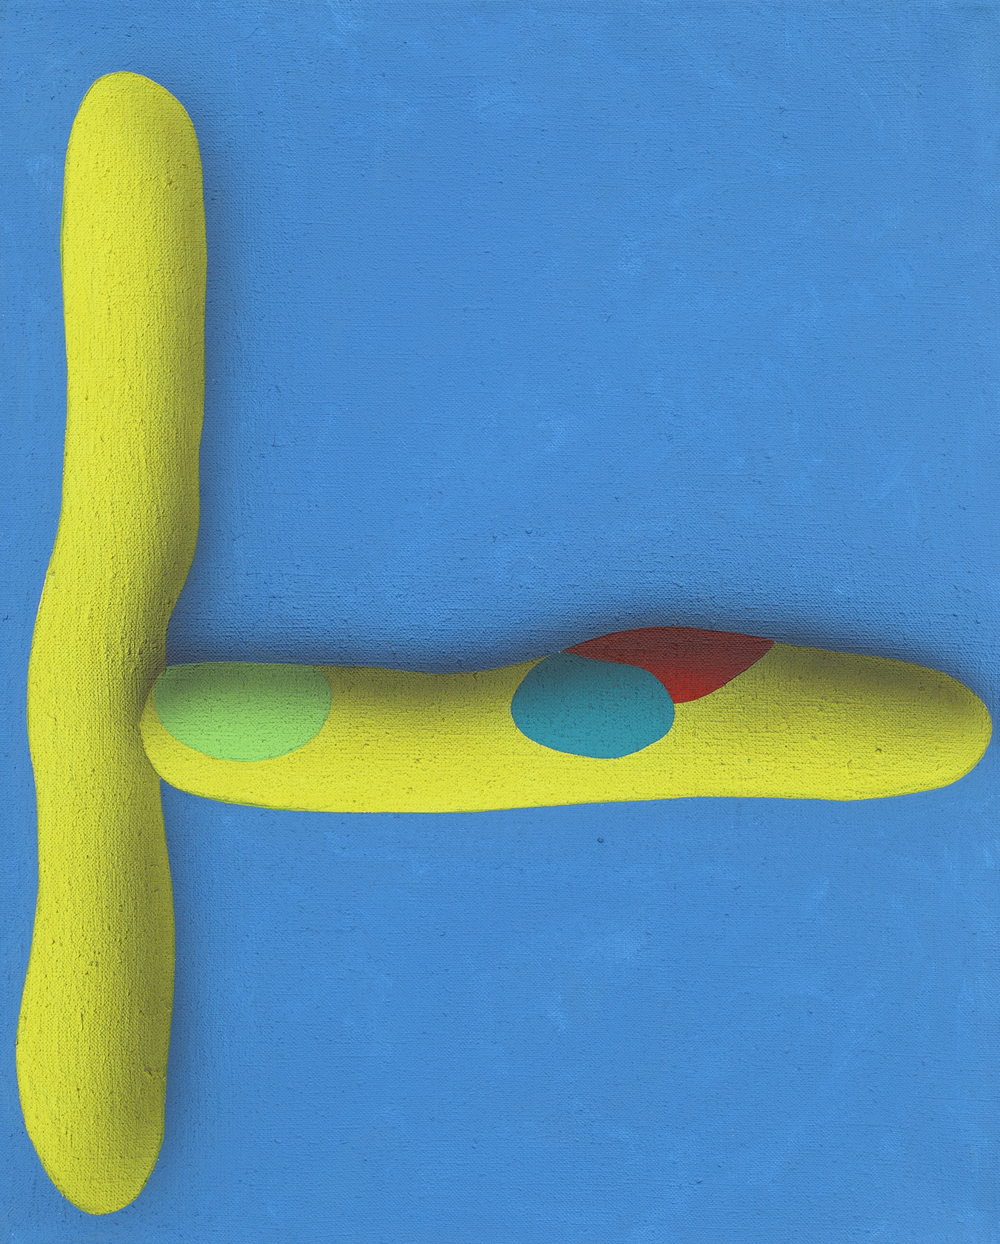 Elementary touching lines VIII. 2010, acrylic on canvas, 50 x 40 cm